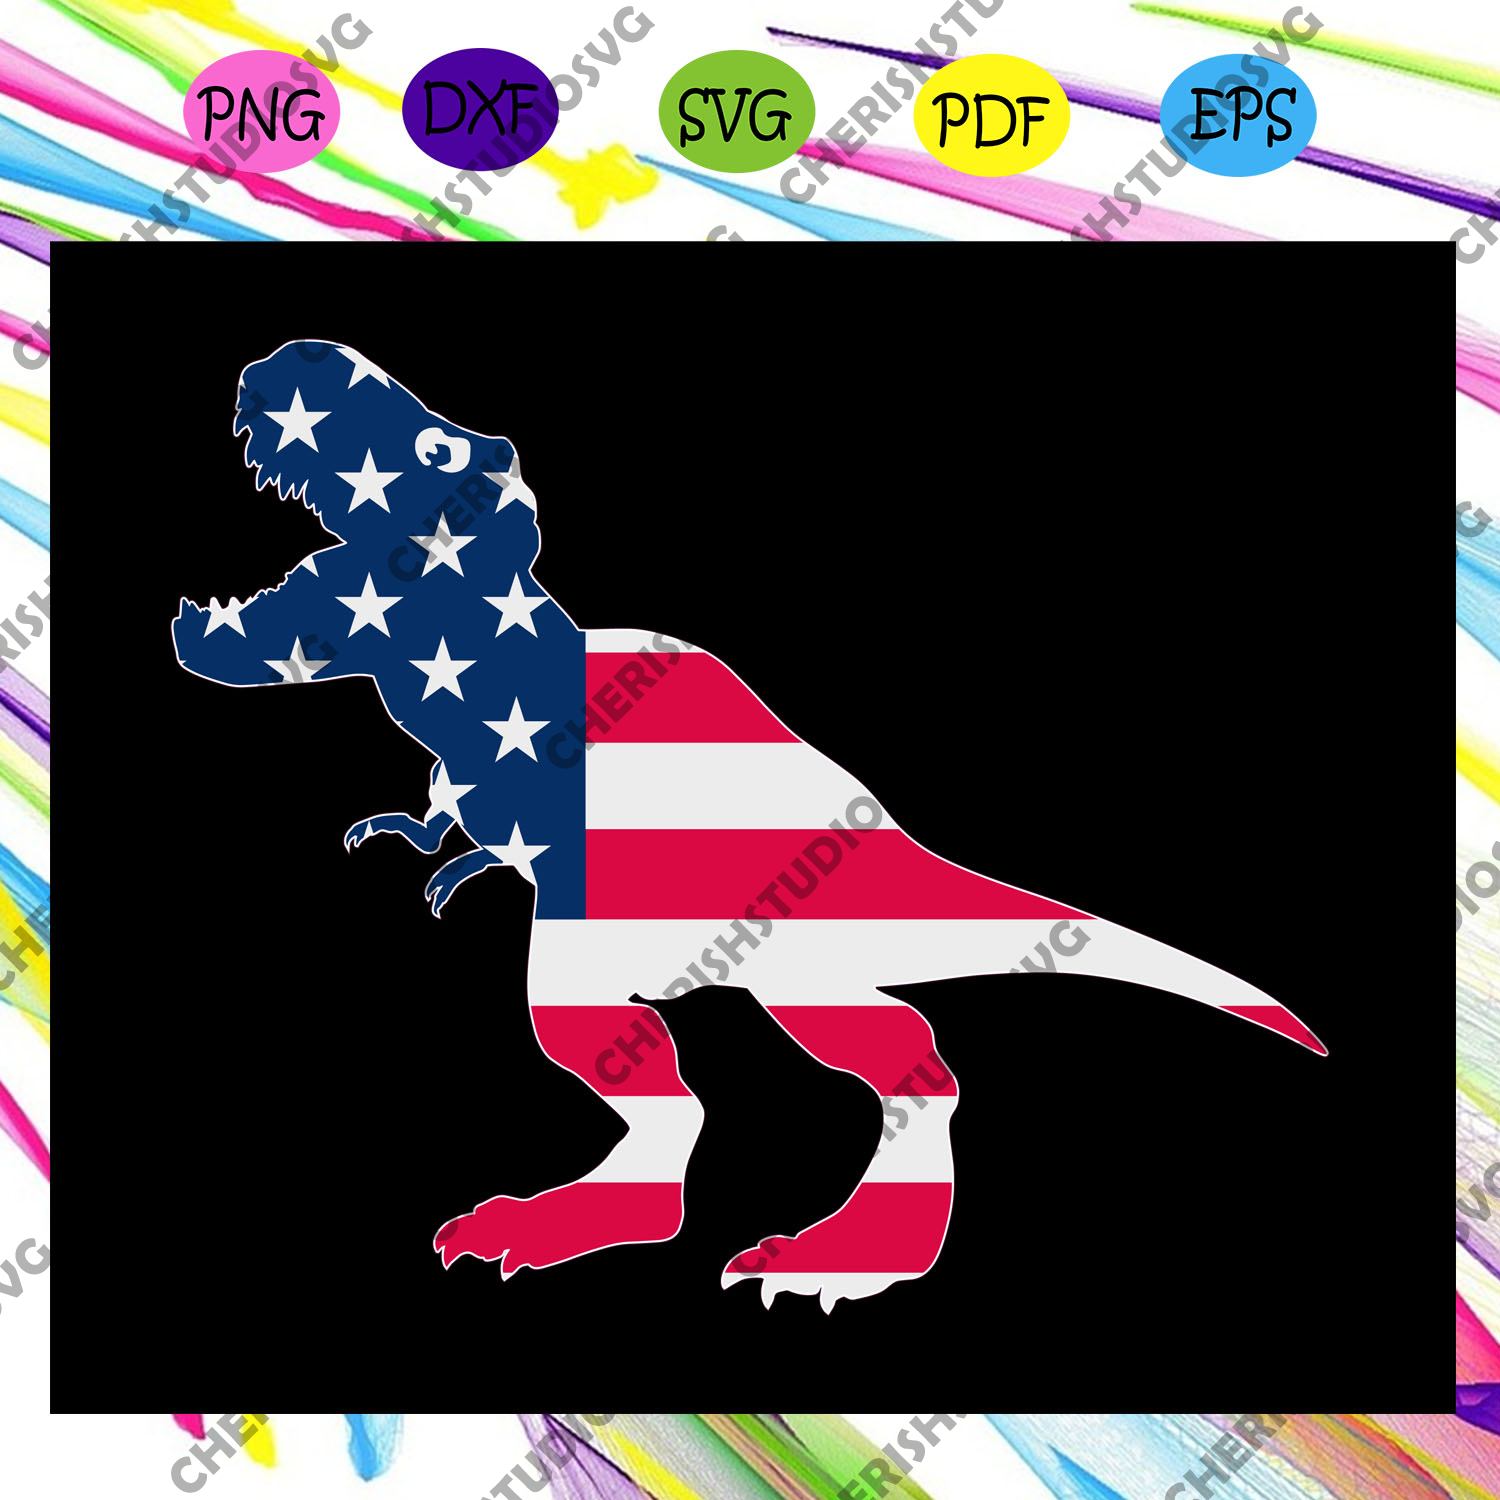 Dinosaur ameican flag, America 4th Of July Patriotic , 4th Of July Svg, Fourth Of July Svg, Patriotic American,Independence Day, Files For Silhouette, Files For Cricut, SVG, DXF, EPS, PNG, Instant Download